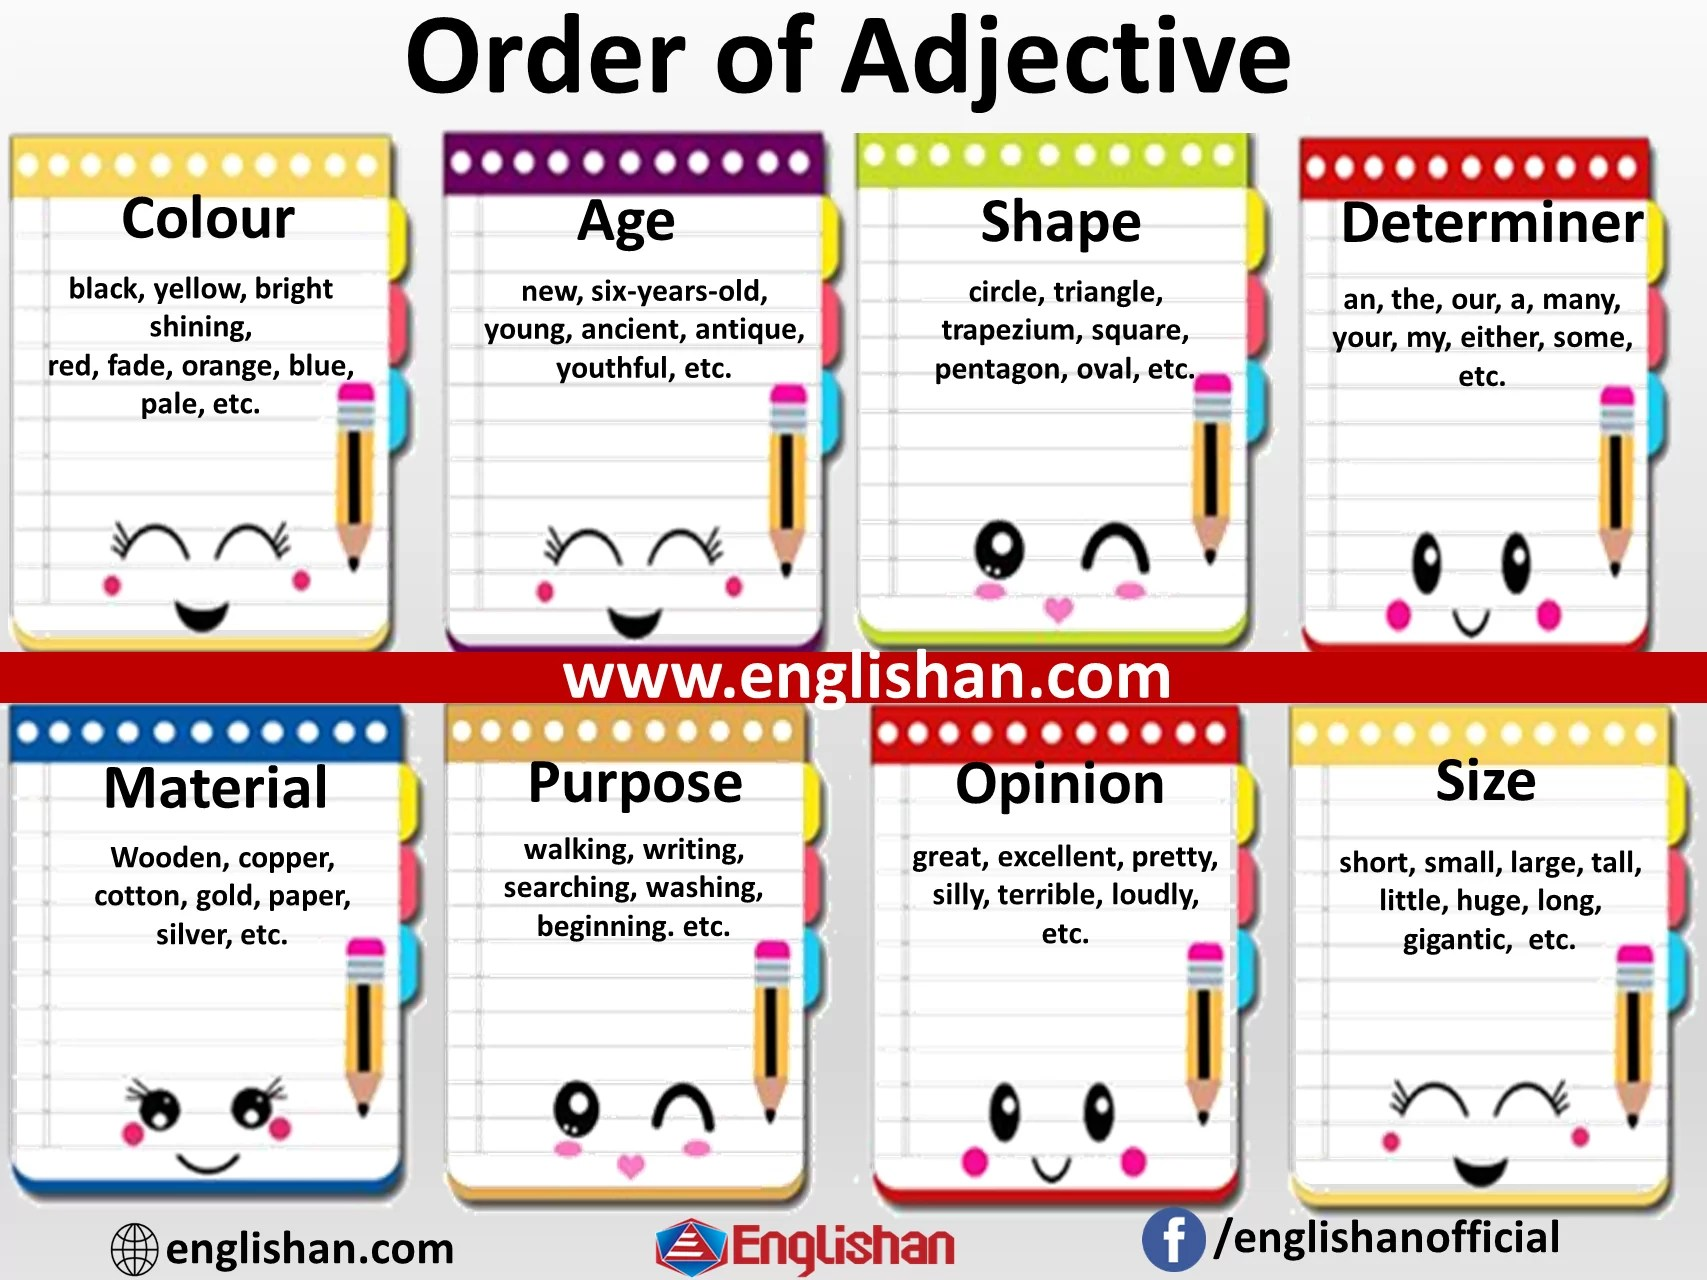 Adjective And Degrees Of Adjective With Their Rules And